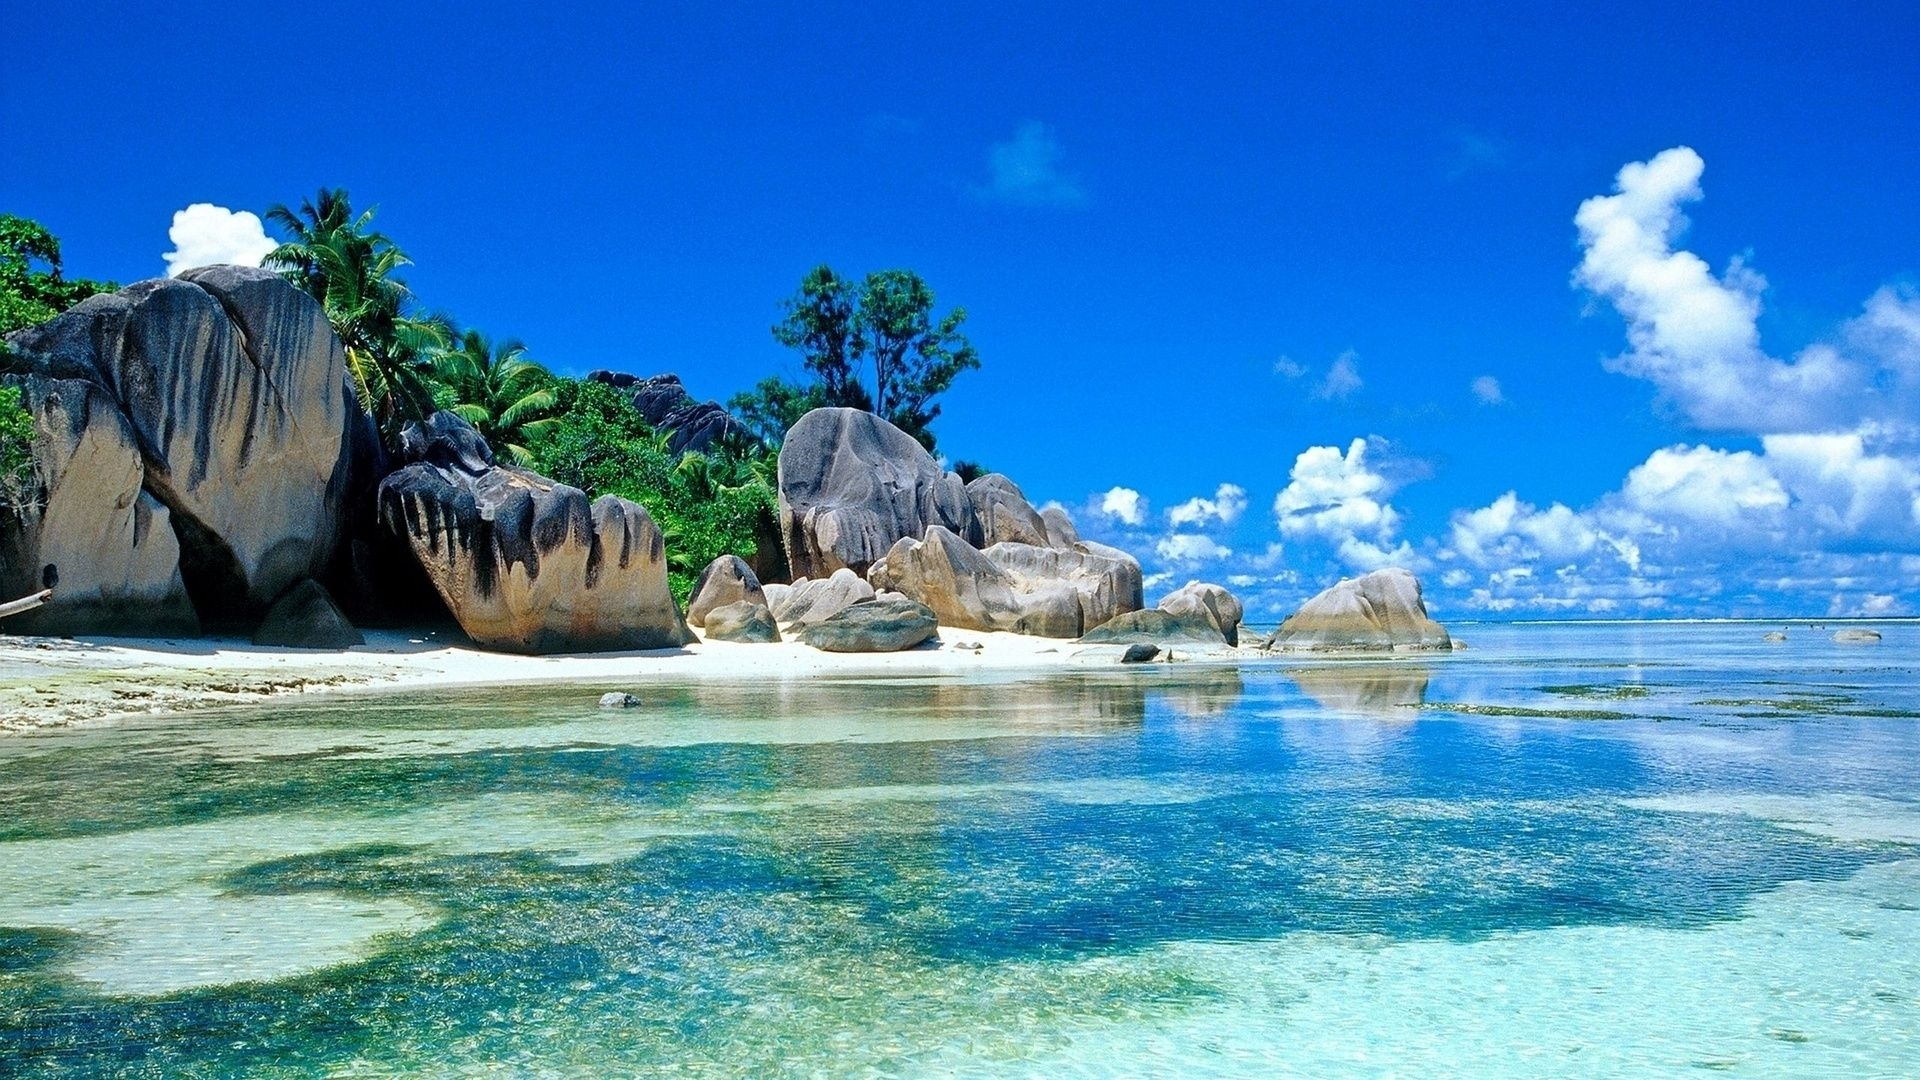 hd quality beach images beach wallpapers hd base | wallpapers